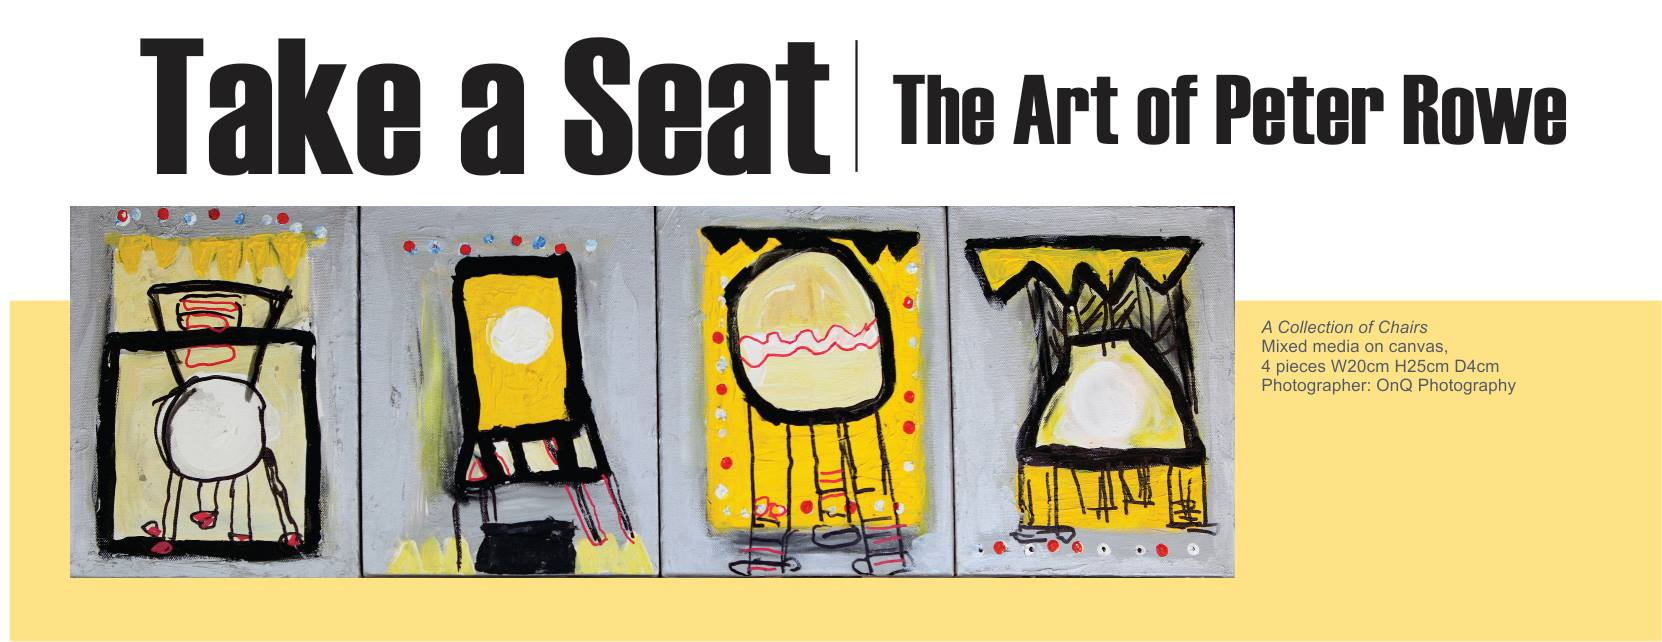 Take a Seat, Peter Rowe art exhibition